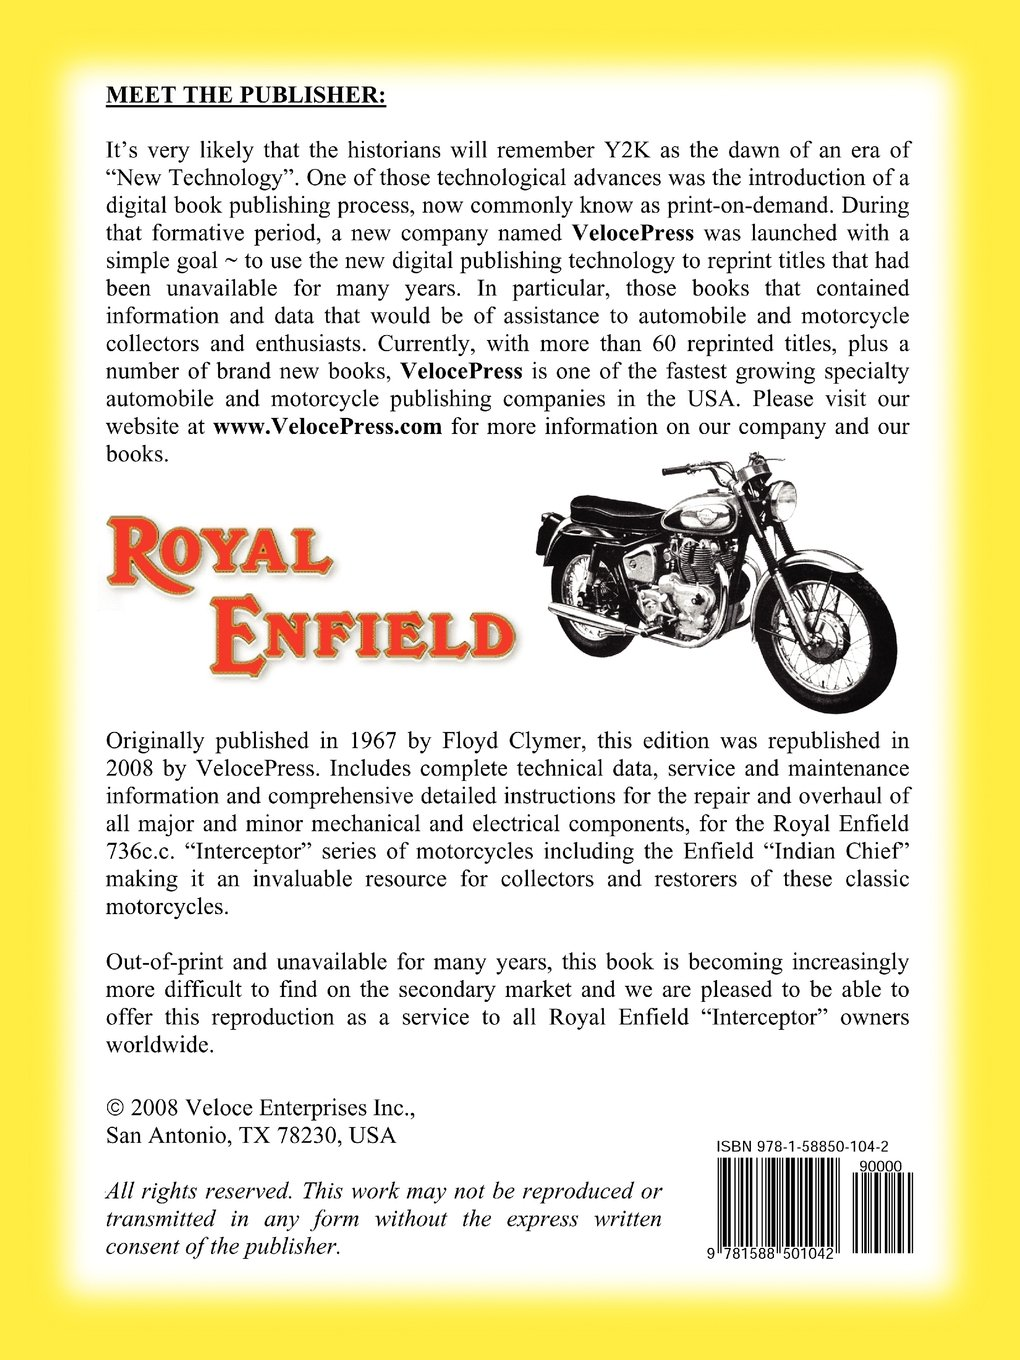 ROYAL ENFIELD FACTORY WORKSHOP MANUAL: 736cc INTERCEPTOR AND ENFIELD INDIAN  CHIEF: Royal Enfield UK Ltd.: 9781588501042: Amazon.com: Books